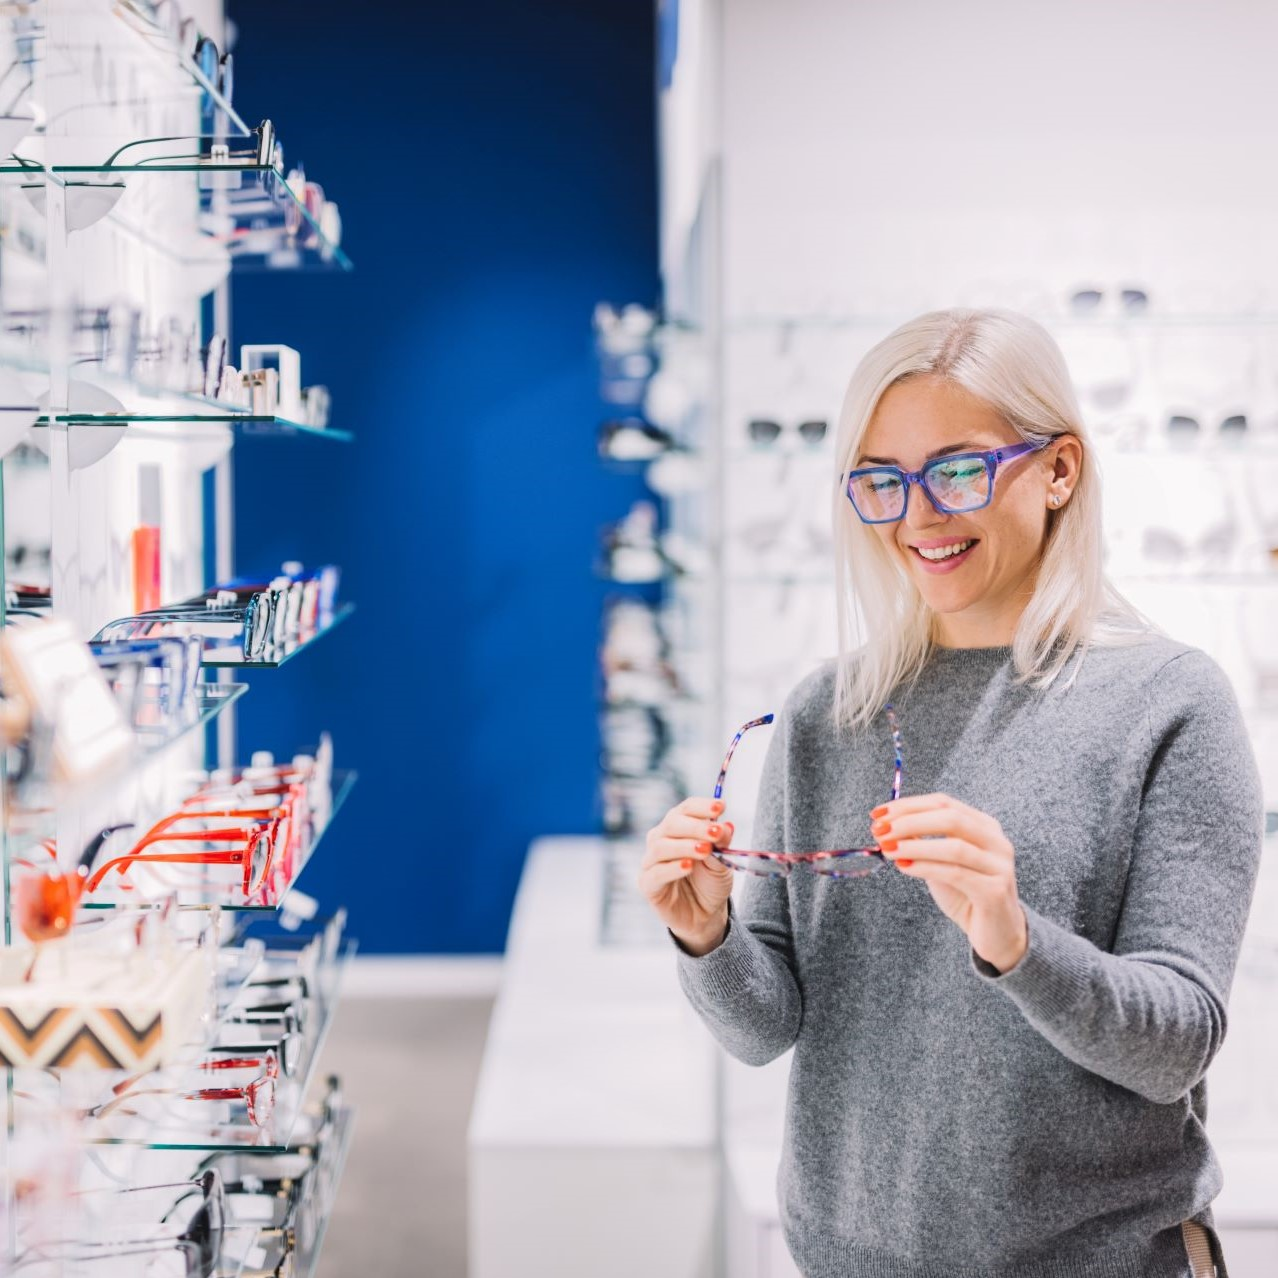 Woman Trying on Glasses